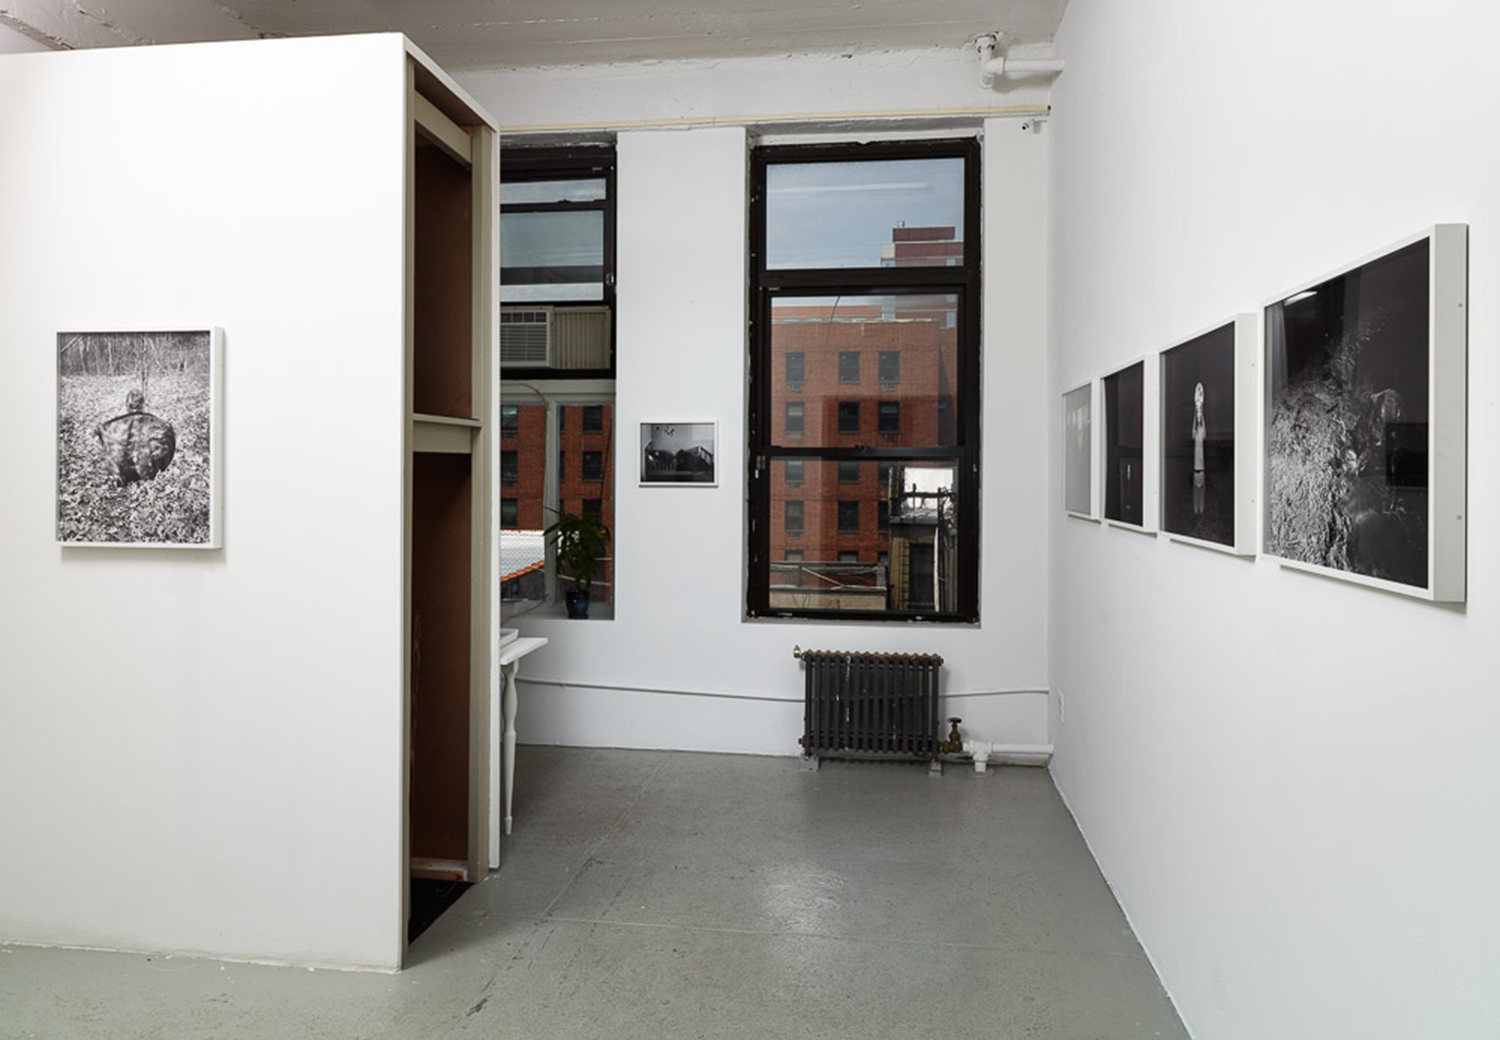 What We Conjure installation view (3 of 3) Kristen Lorello June 5 - July 18, 2014